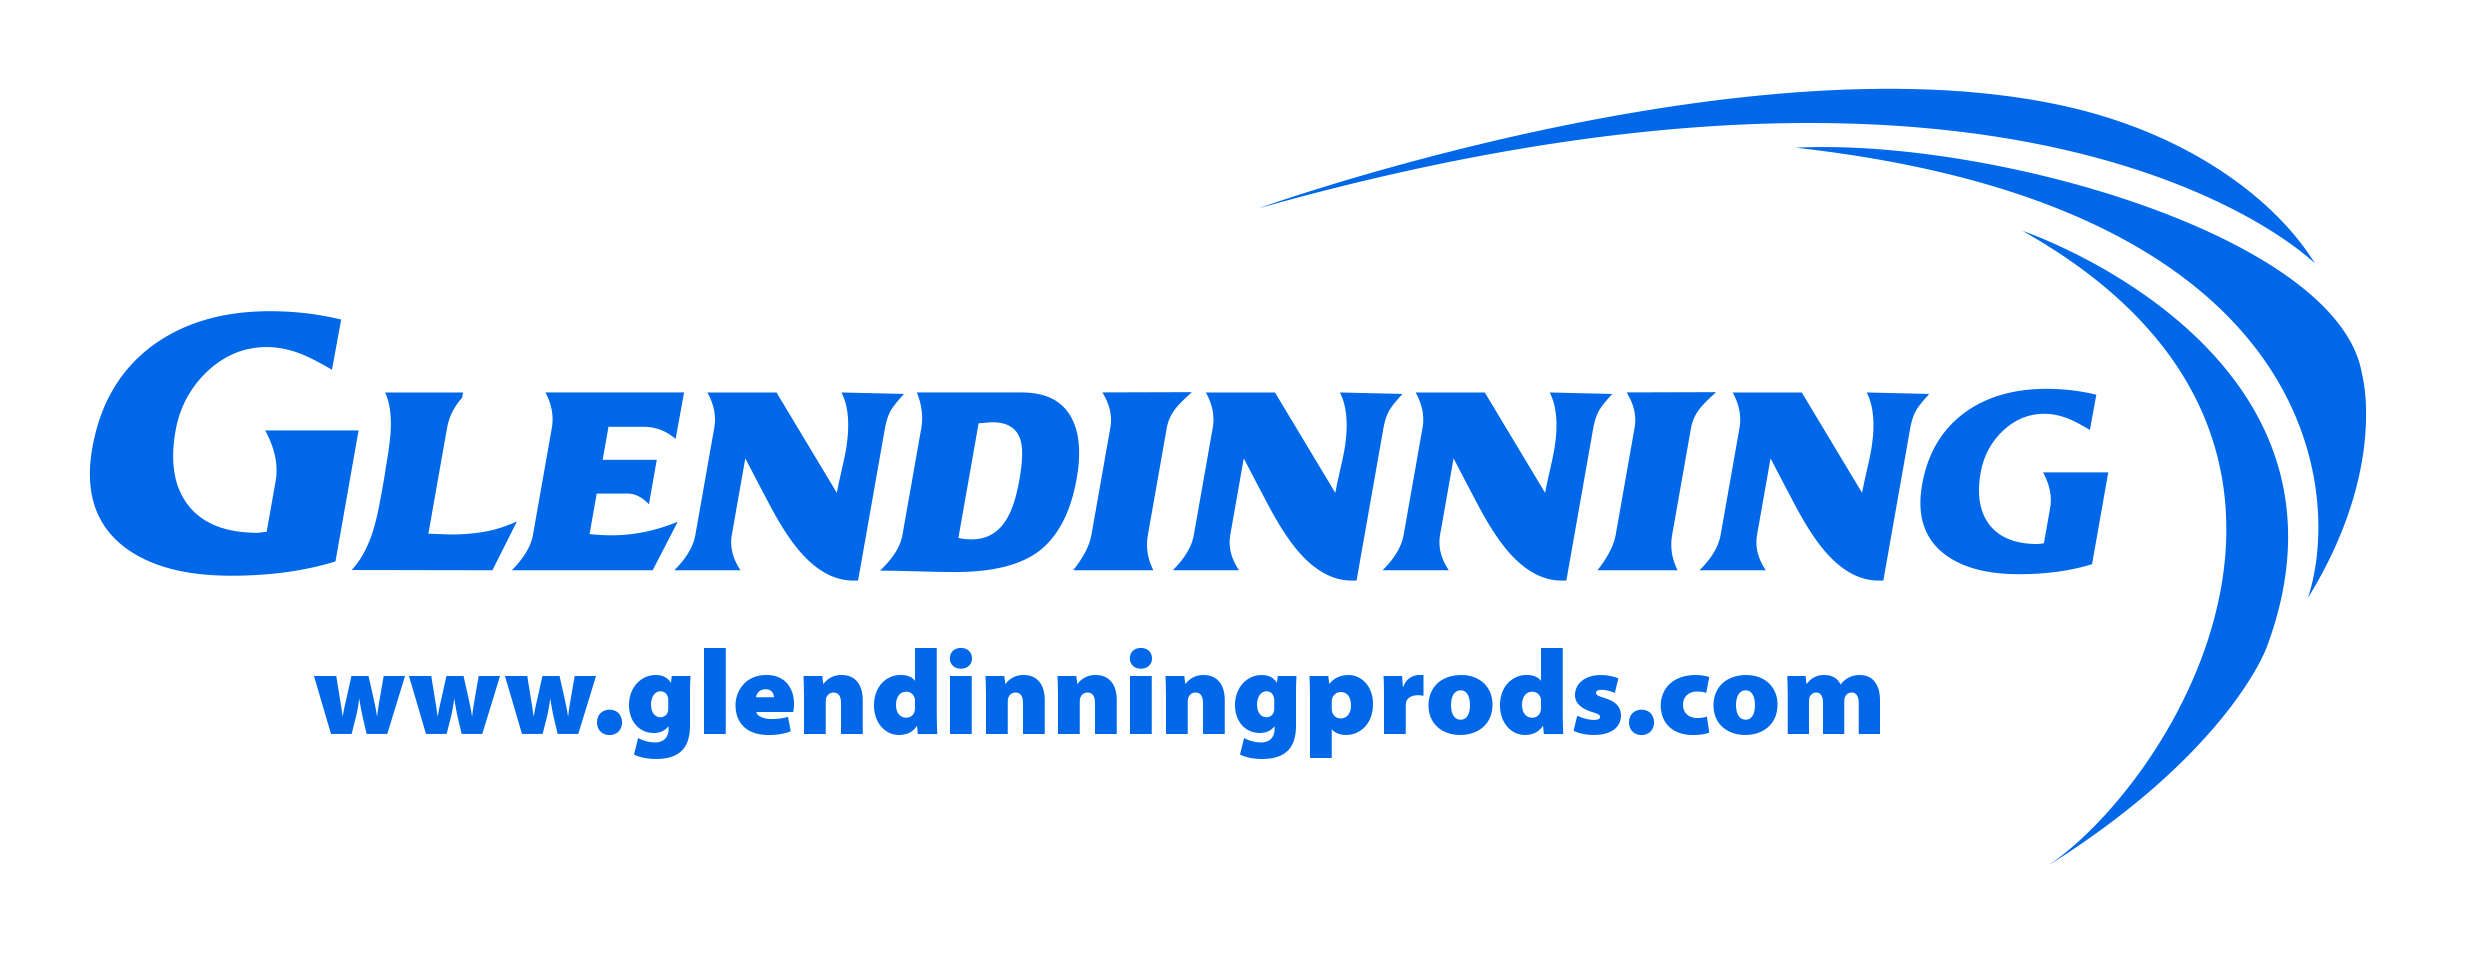 Glendinning Products in Conway, SC. Motorized electric cord reels & hose reels, electronic marine engine controls, joystick marine engine controls, automatic boat engine synchronizers, tachometer flex cables, drive joints & pull & push-pull control cables.